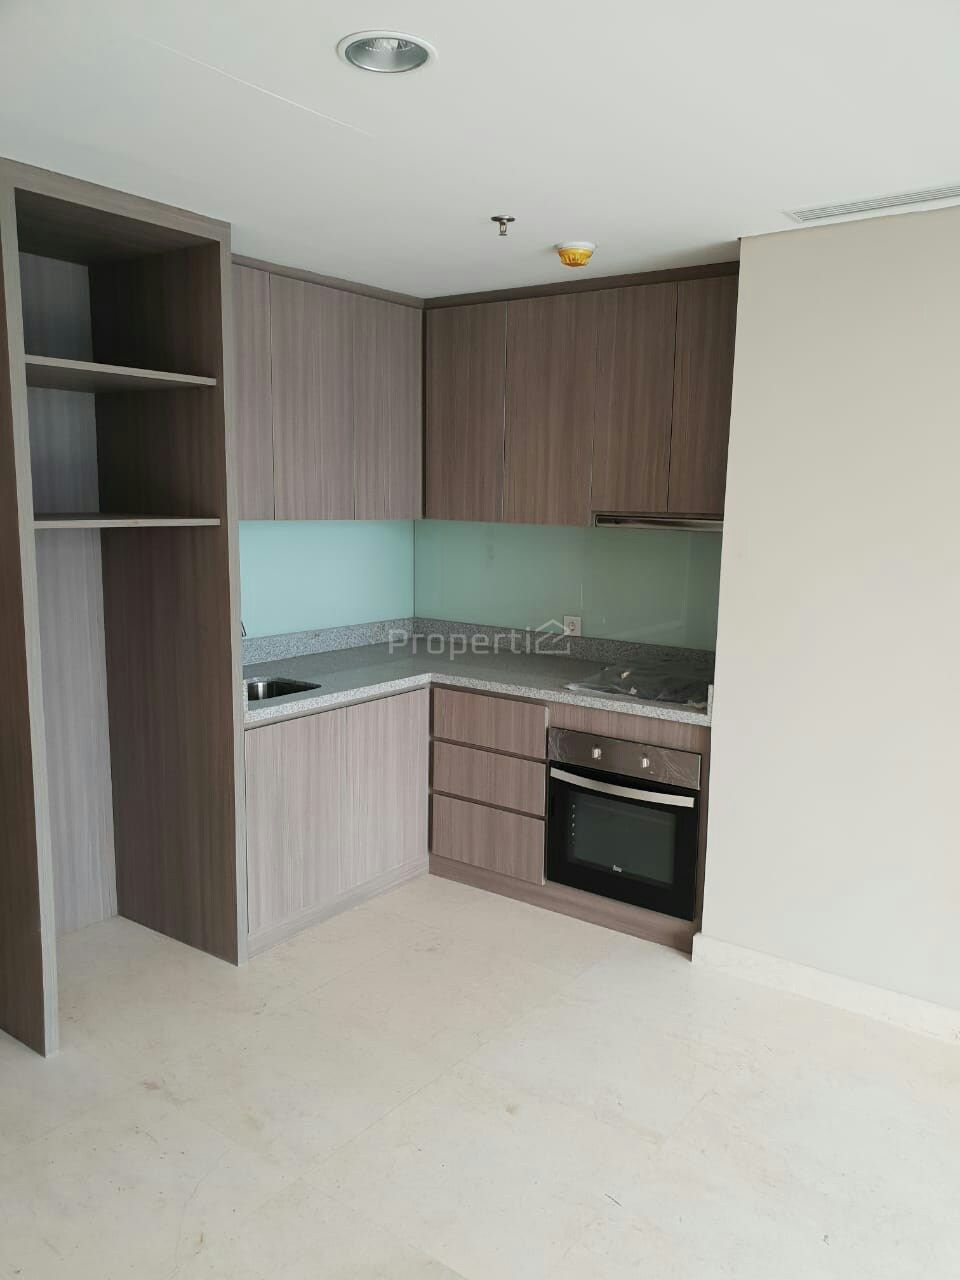 2 BR Unit on 7th Floor at Tower Orchard, Ciputra World 2, Jakarta Selatan